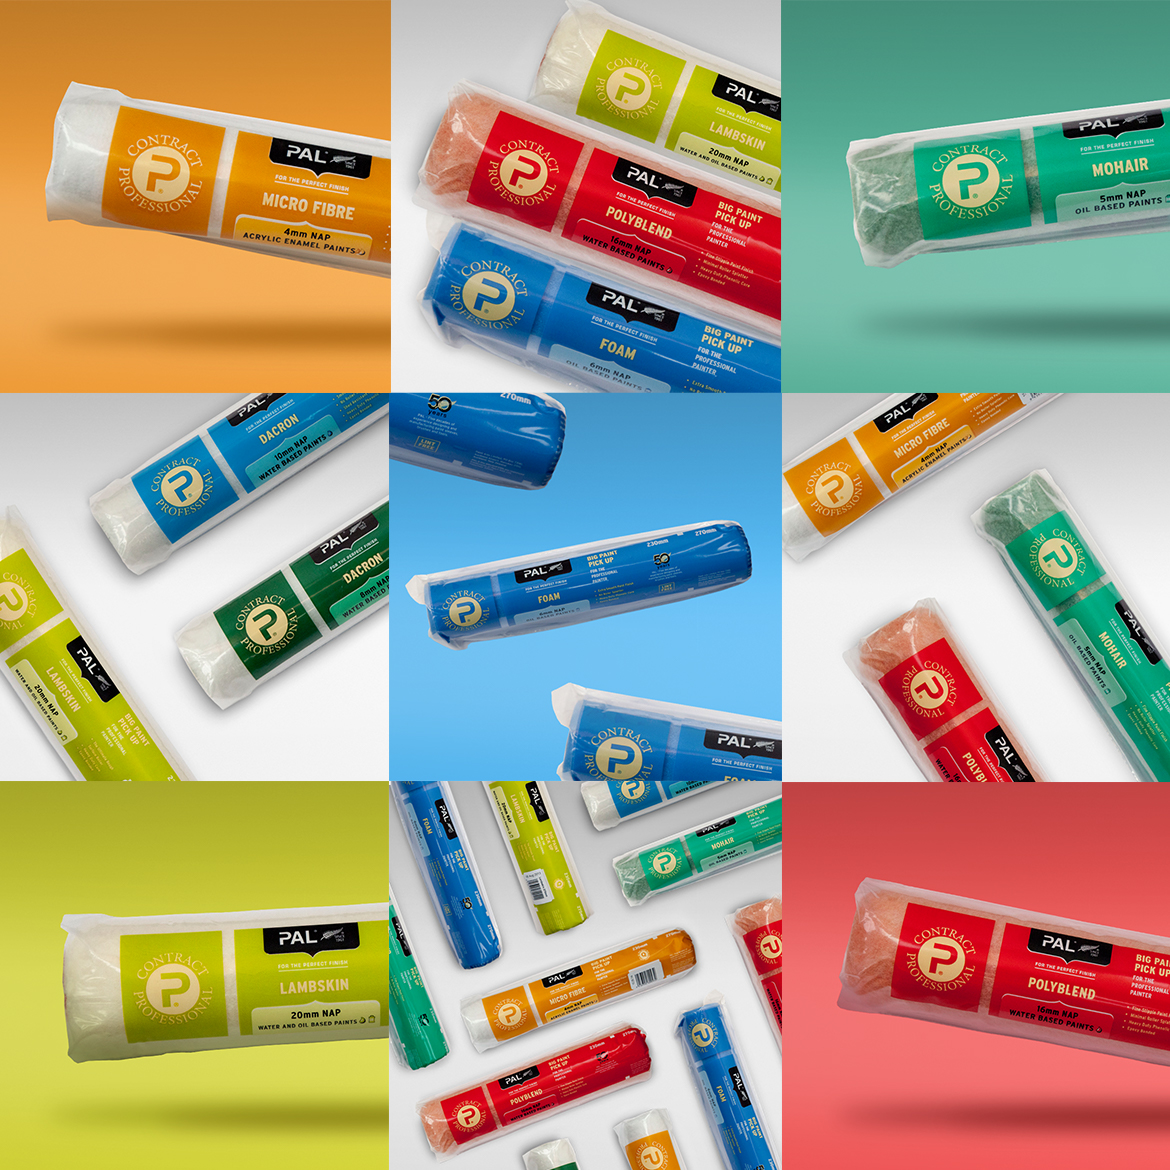 Paint Aids Limited Roller Sleeve Packaging Design